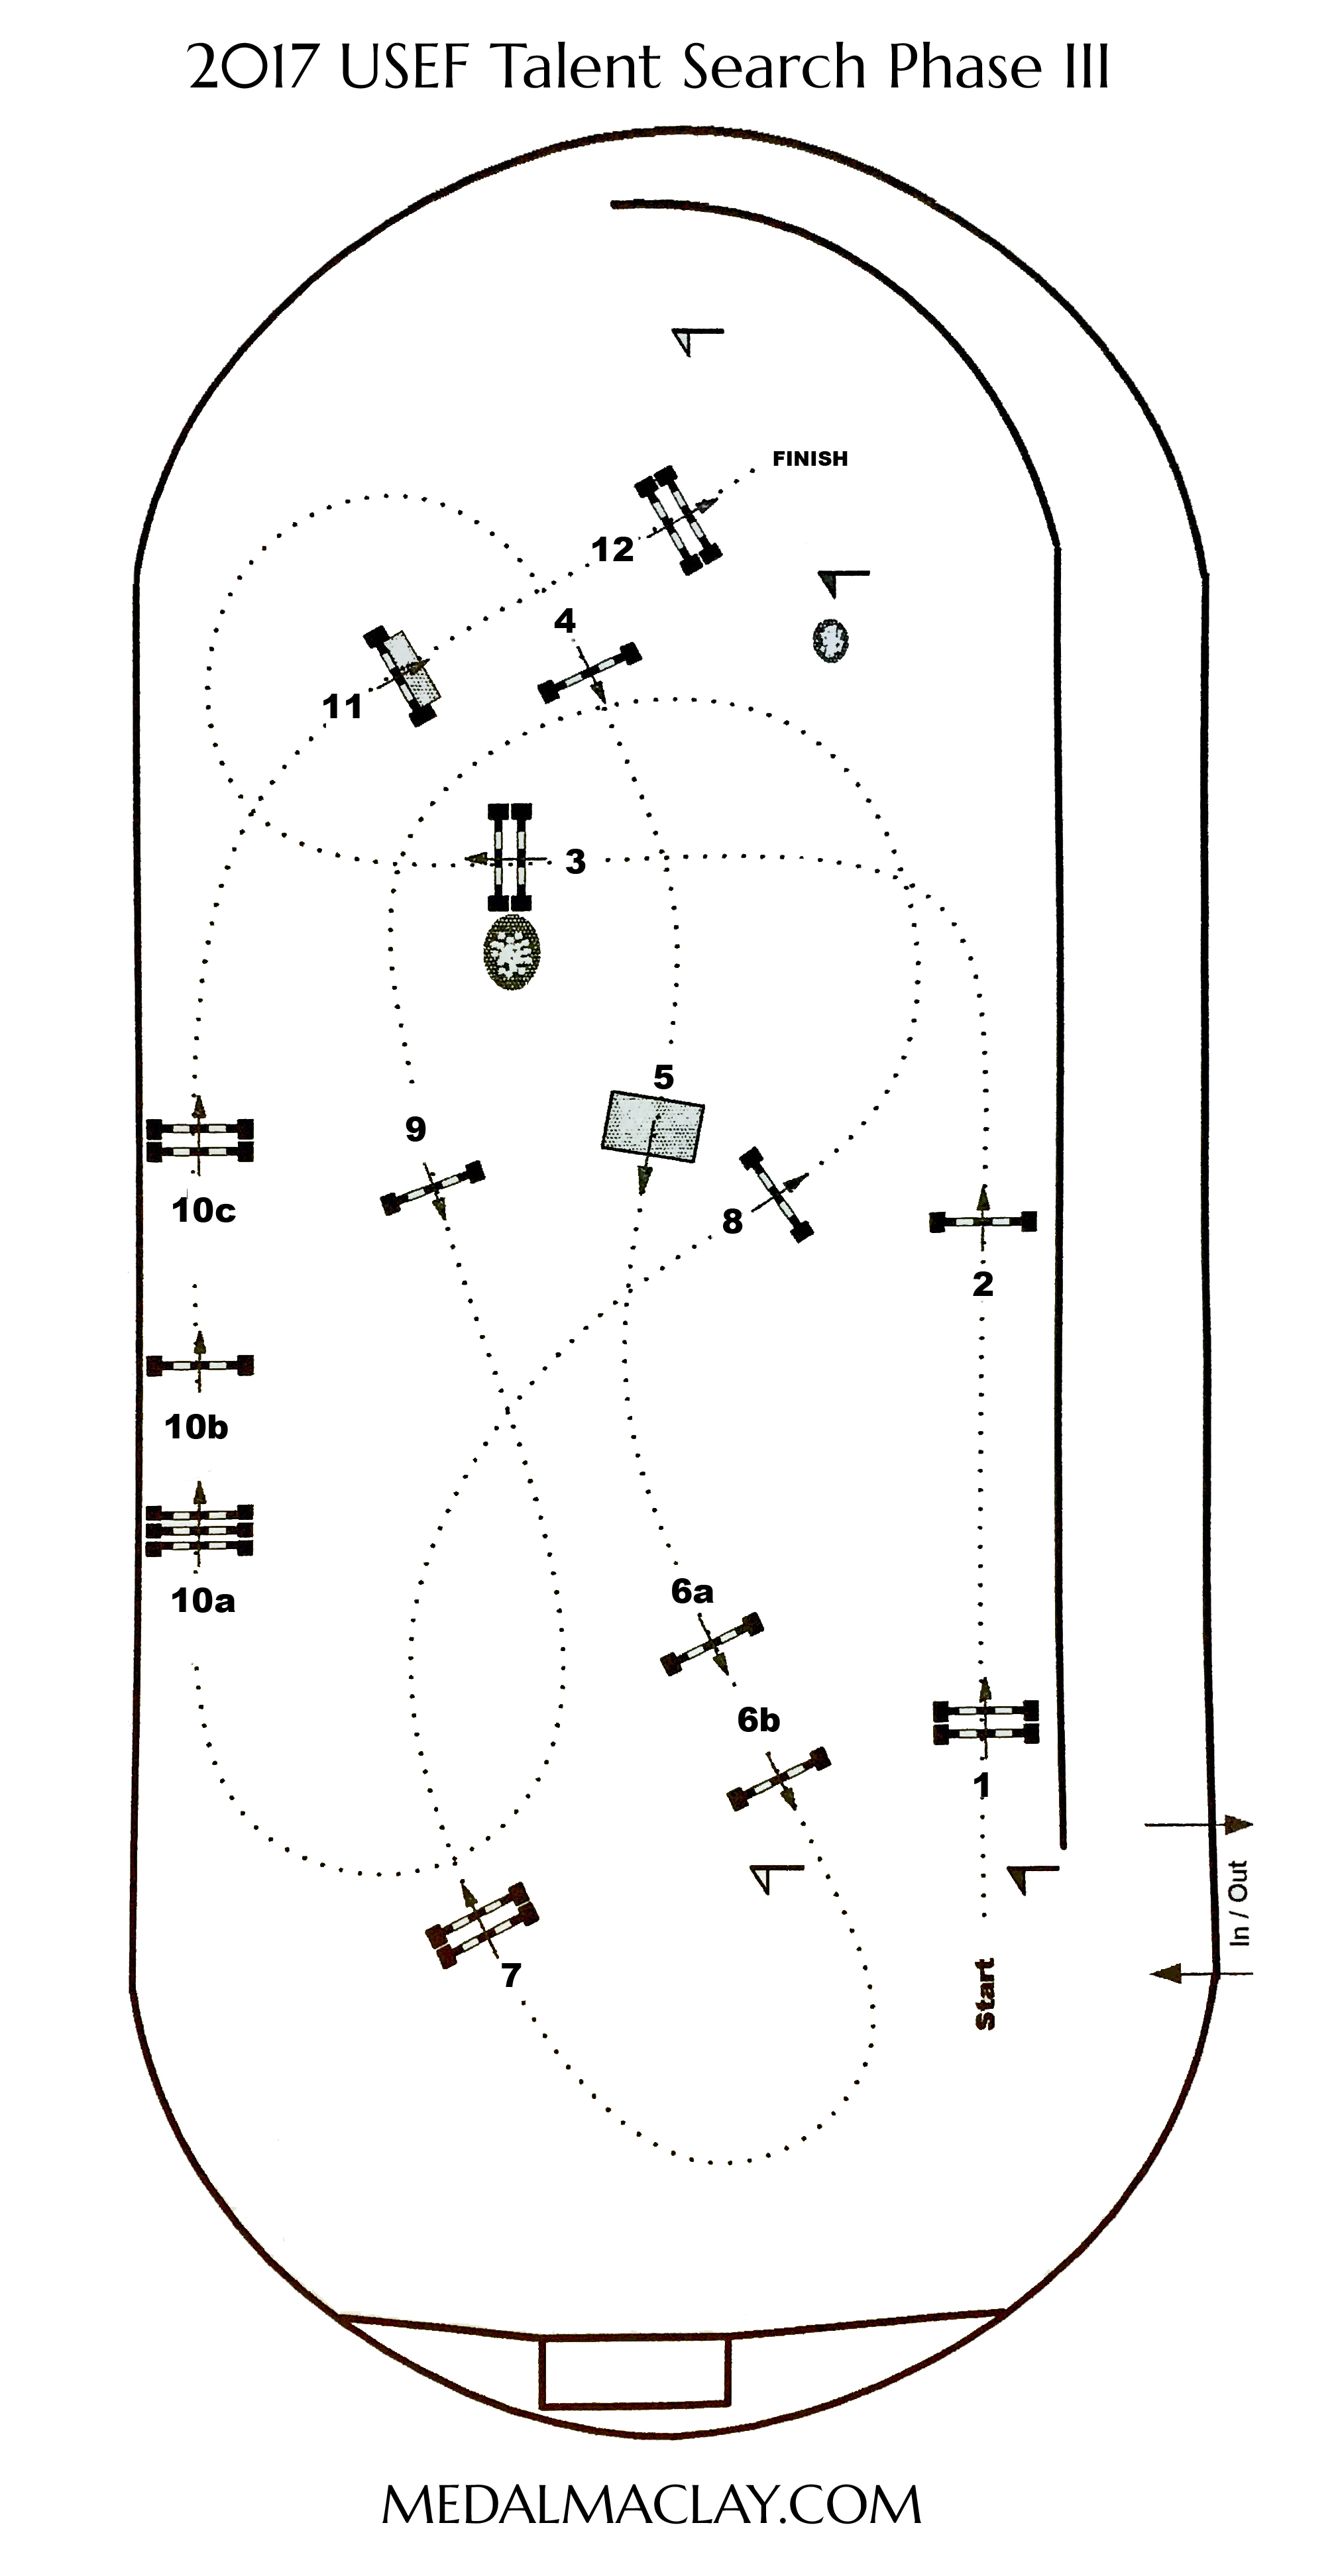 2017 USEF Talent Search East Phase III Course Map